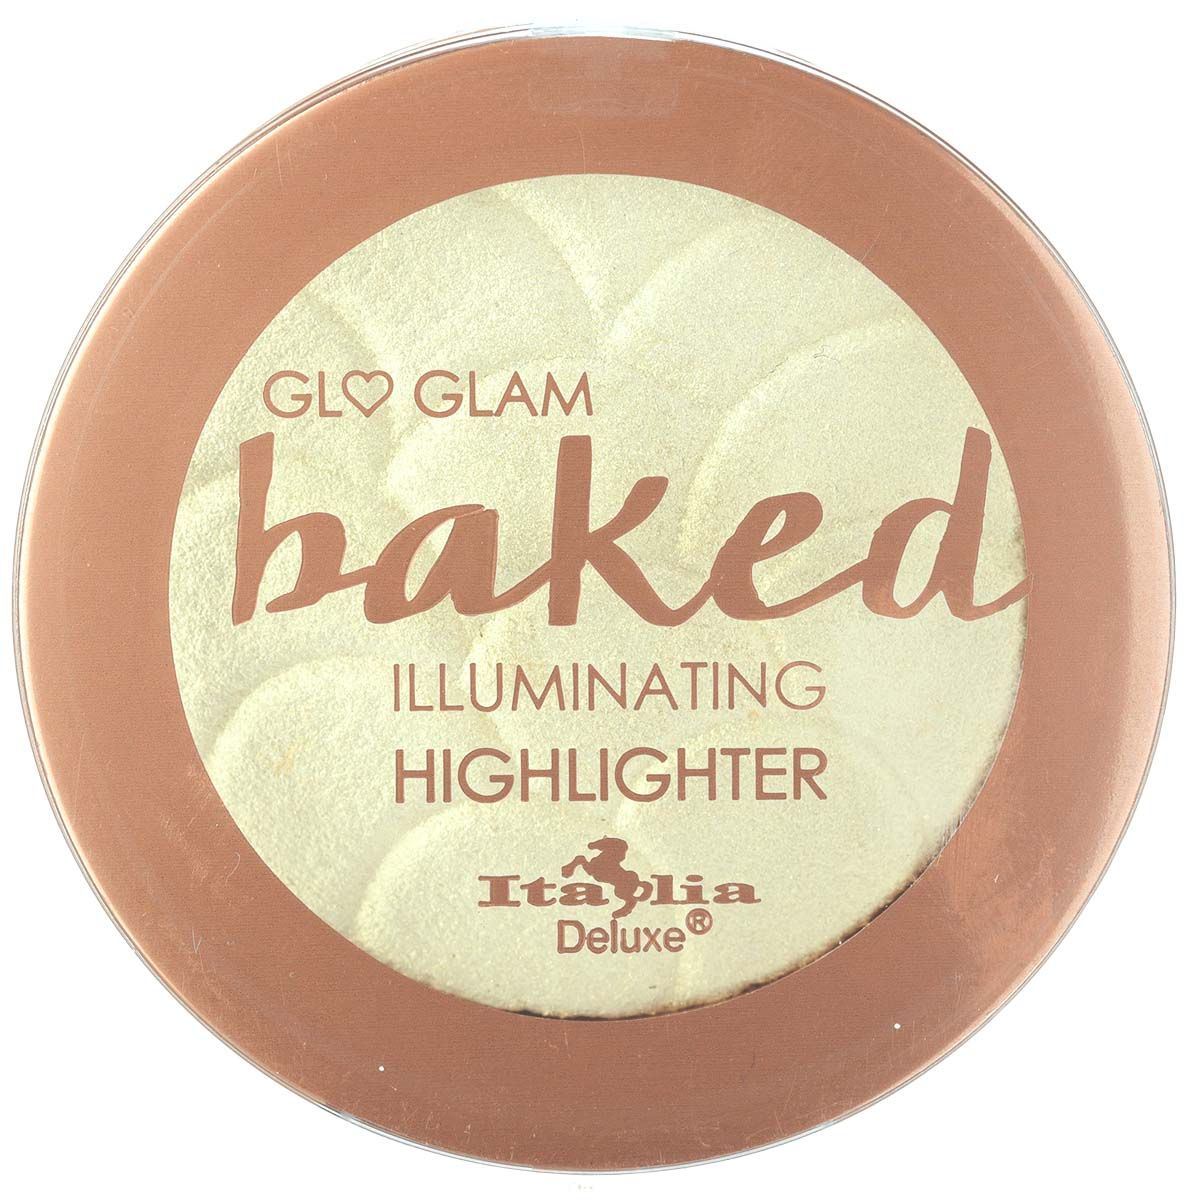 Italia Deluxe Glo Glam Baked Illuminating Highlighter